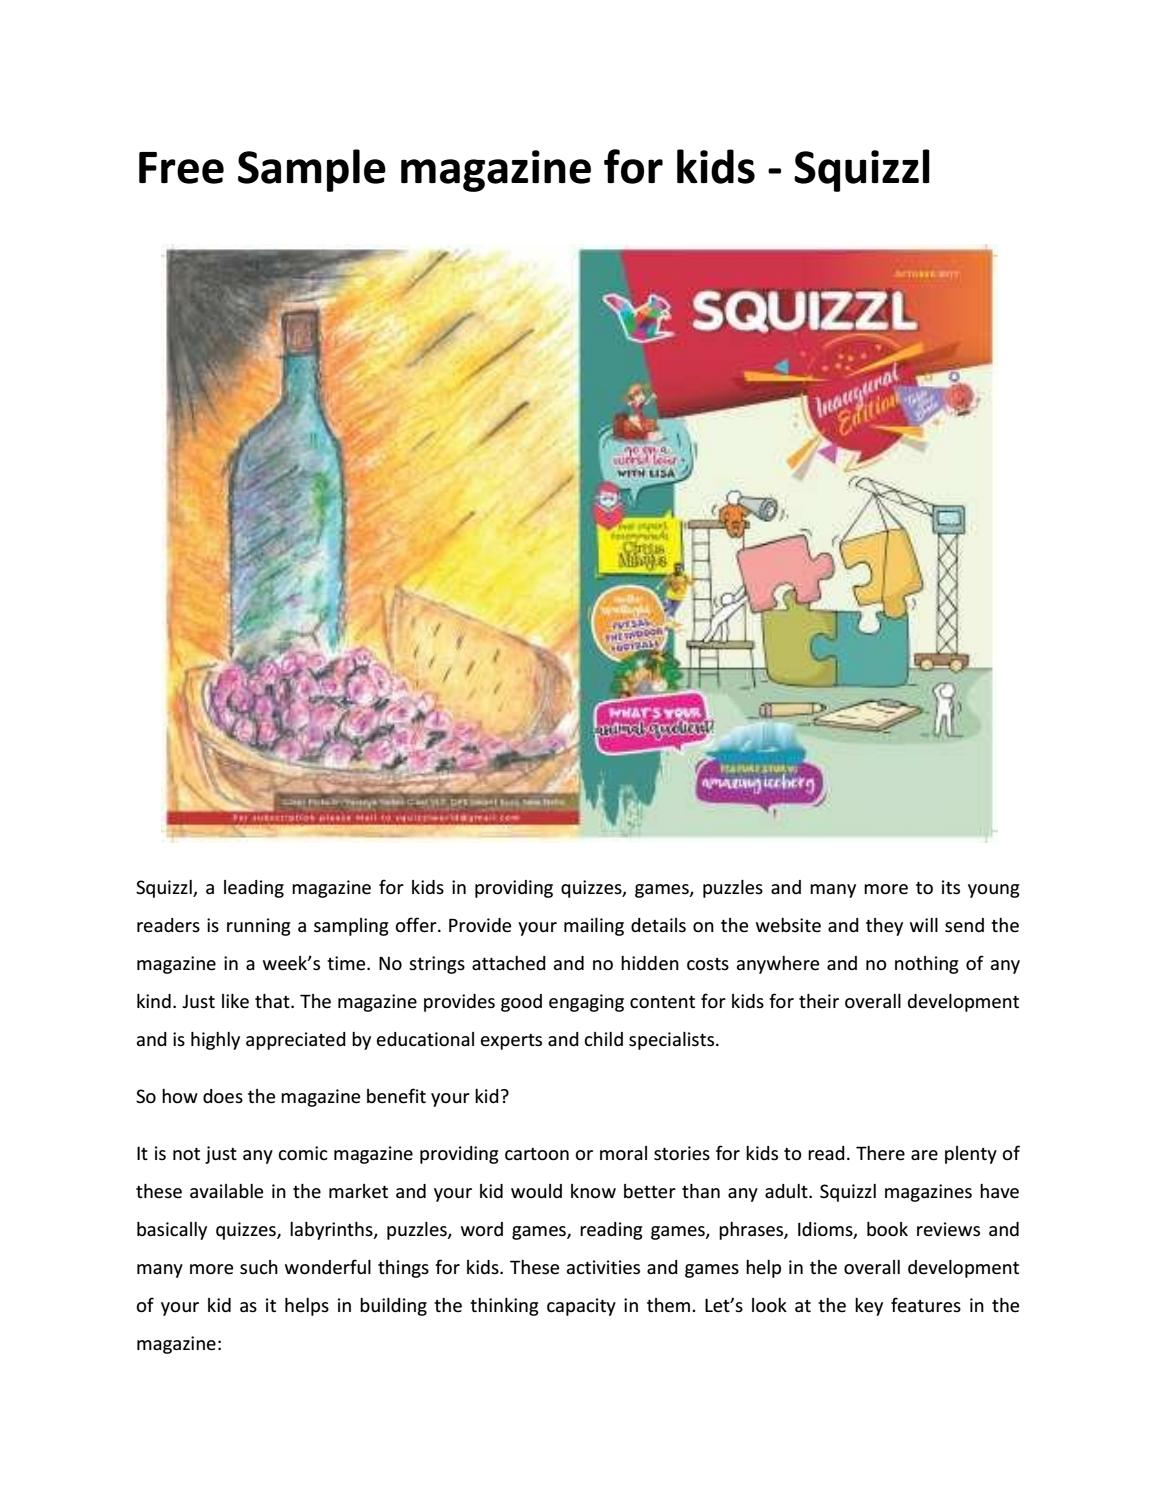 best magazine for kids - Squizzl by squizzlworld - issuu